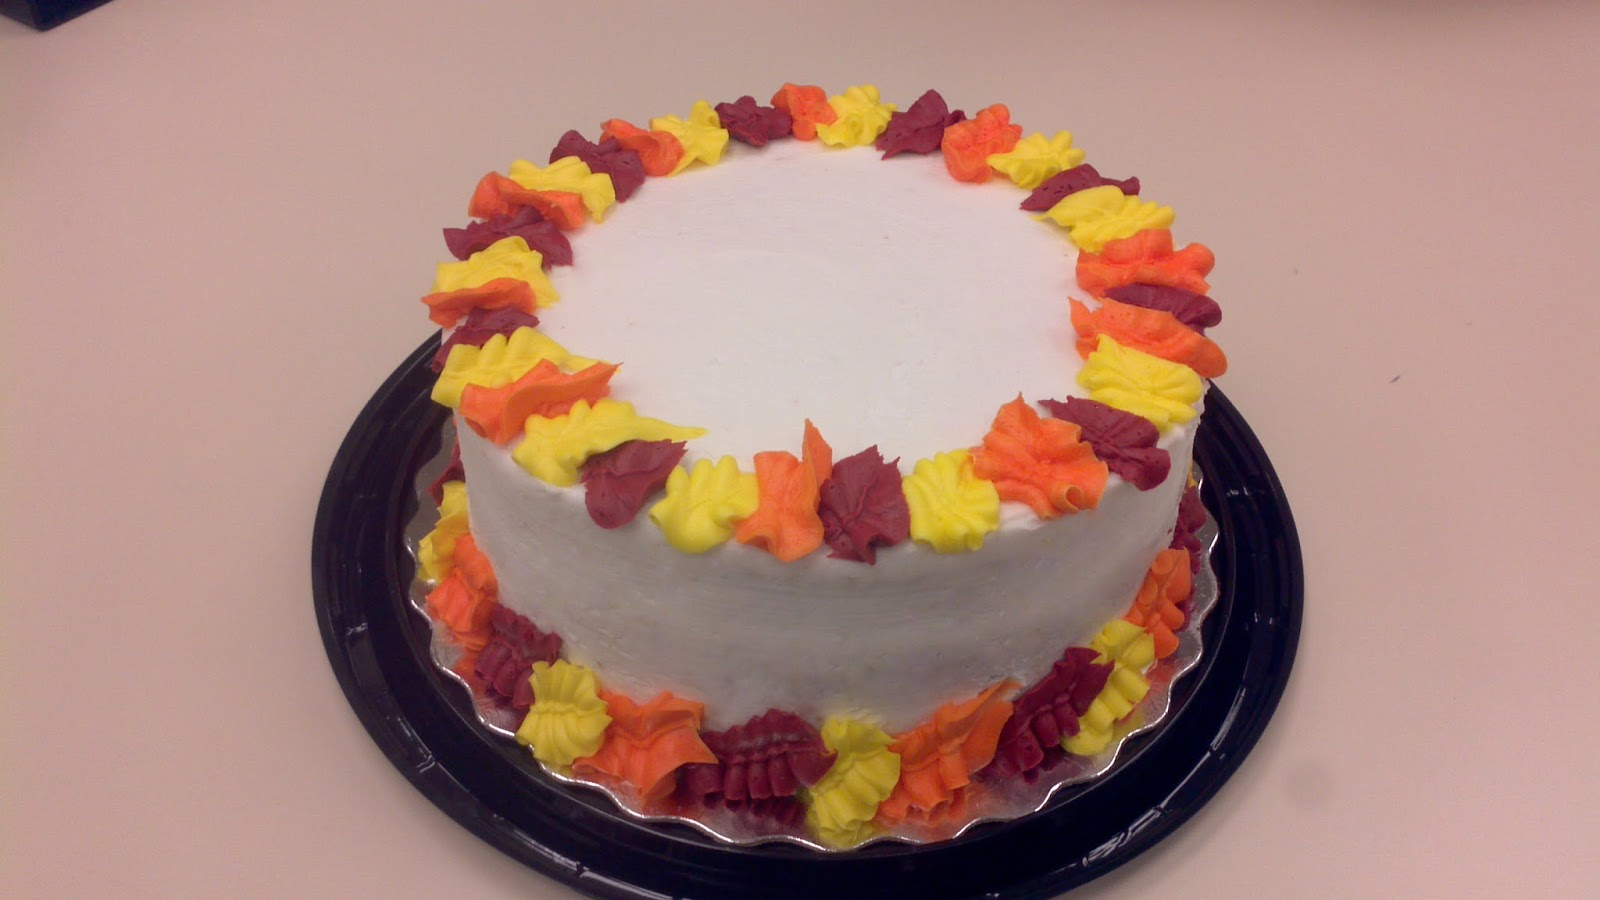 Frosting, Cakes, and Creativity: Fall Cake and Cupcake Decorations